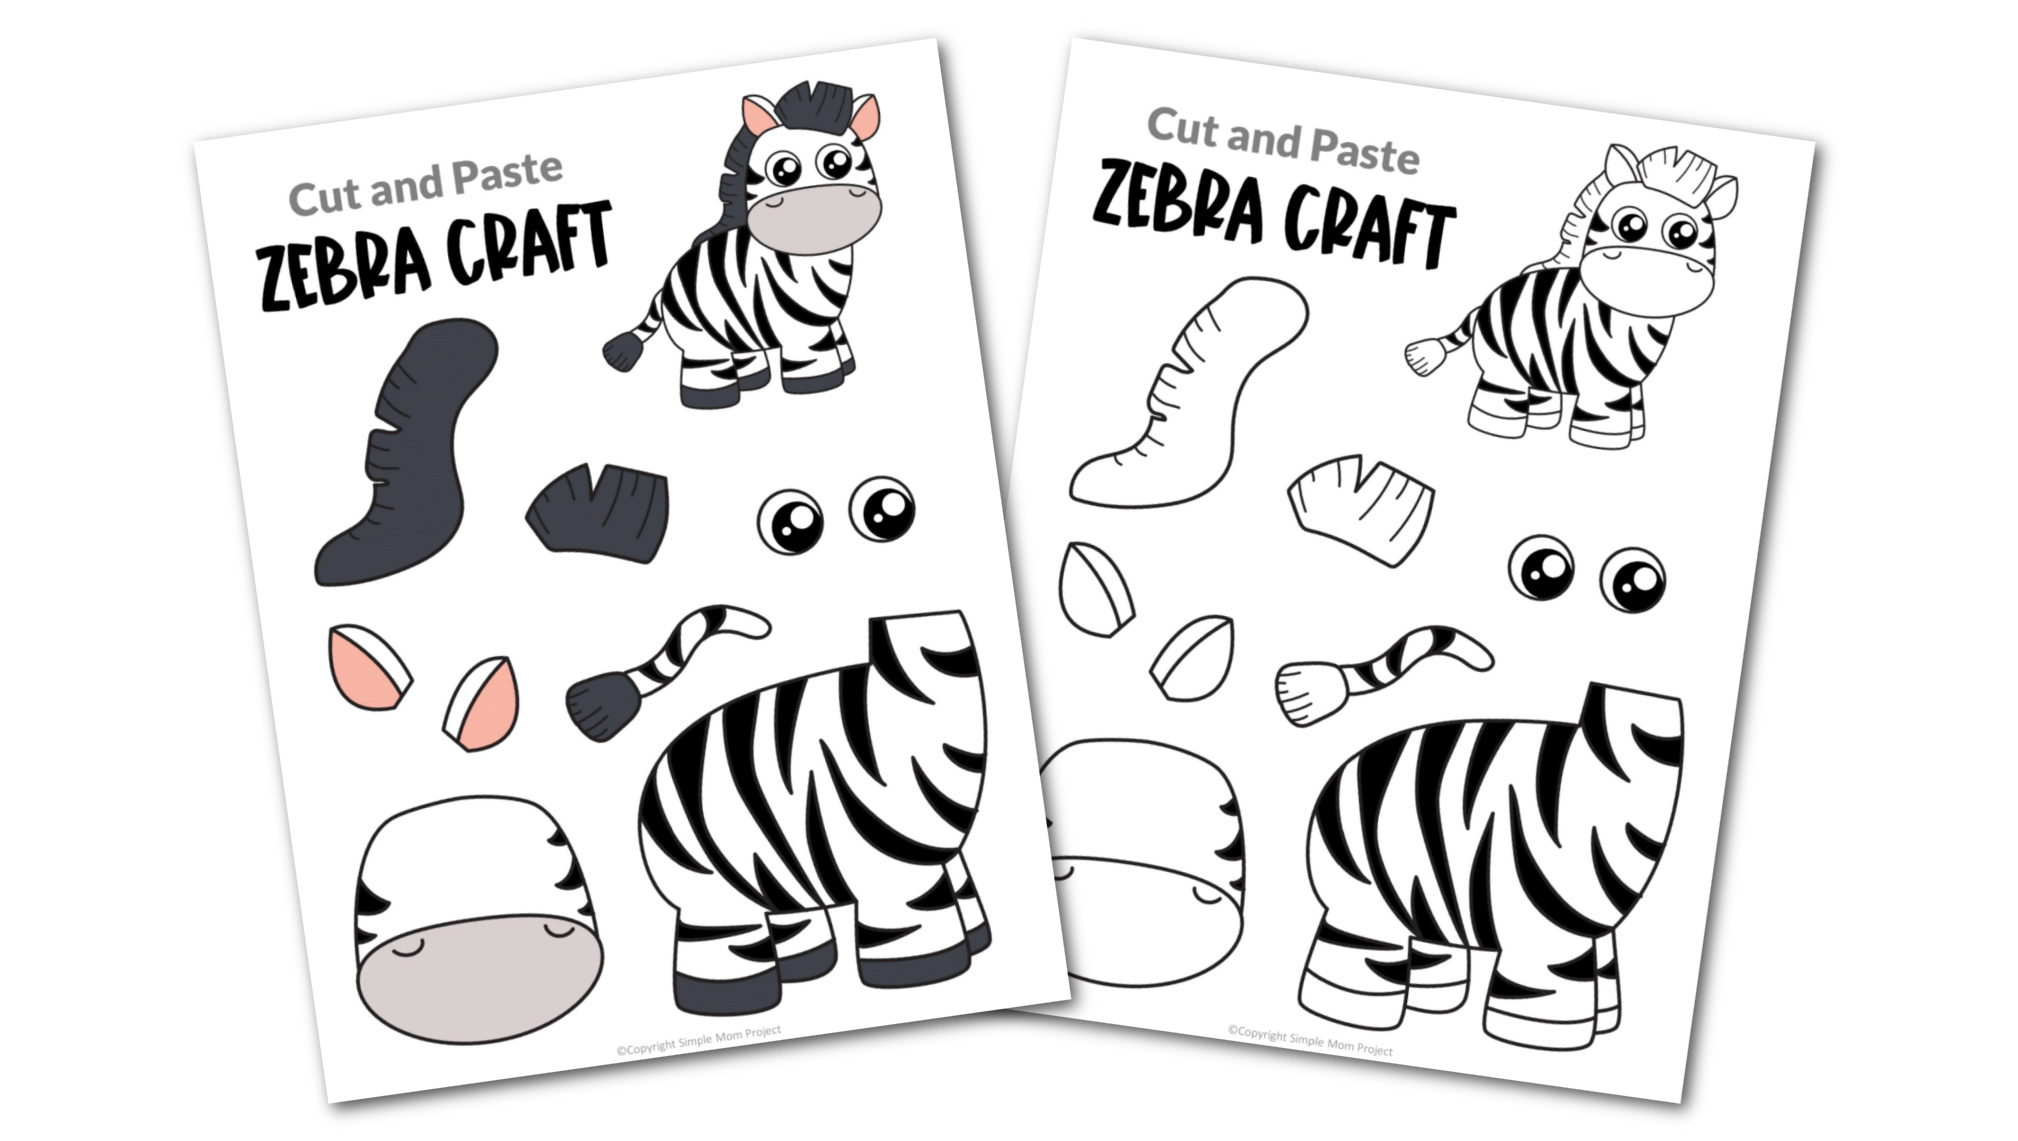 Zebra Cut and Paste Craft for Toddlers, Preschoolers and Kindergarteners